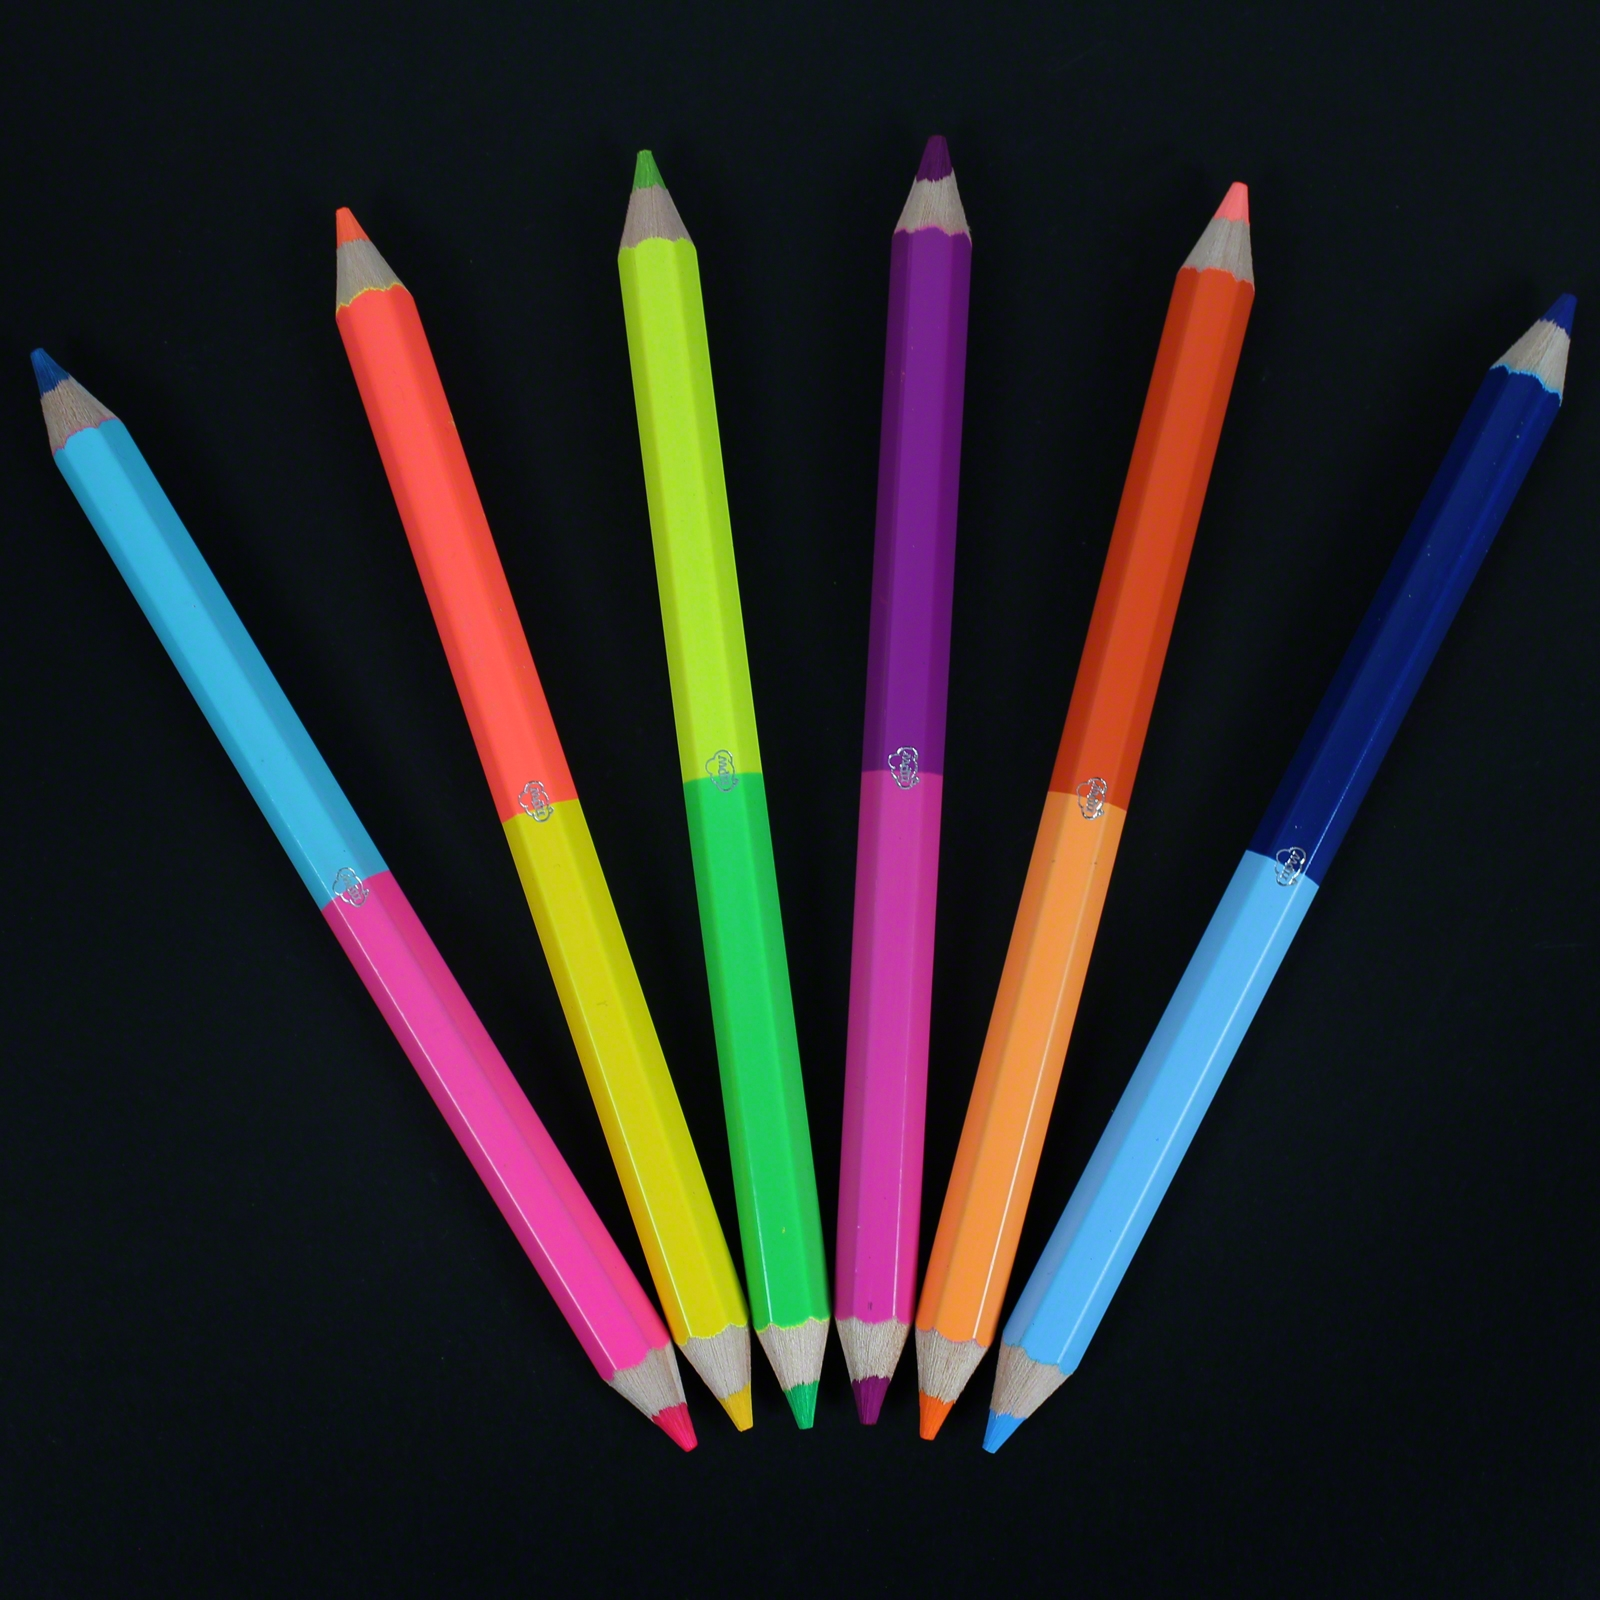 Chunky 50 50 Neon Pencils 6 Pack